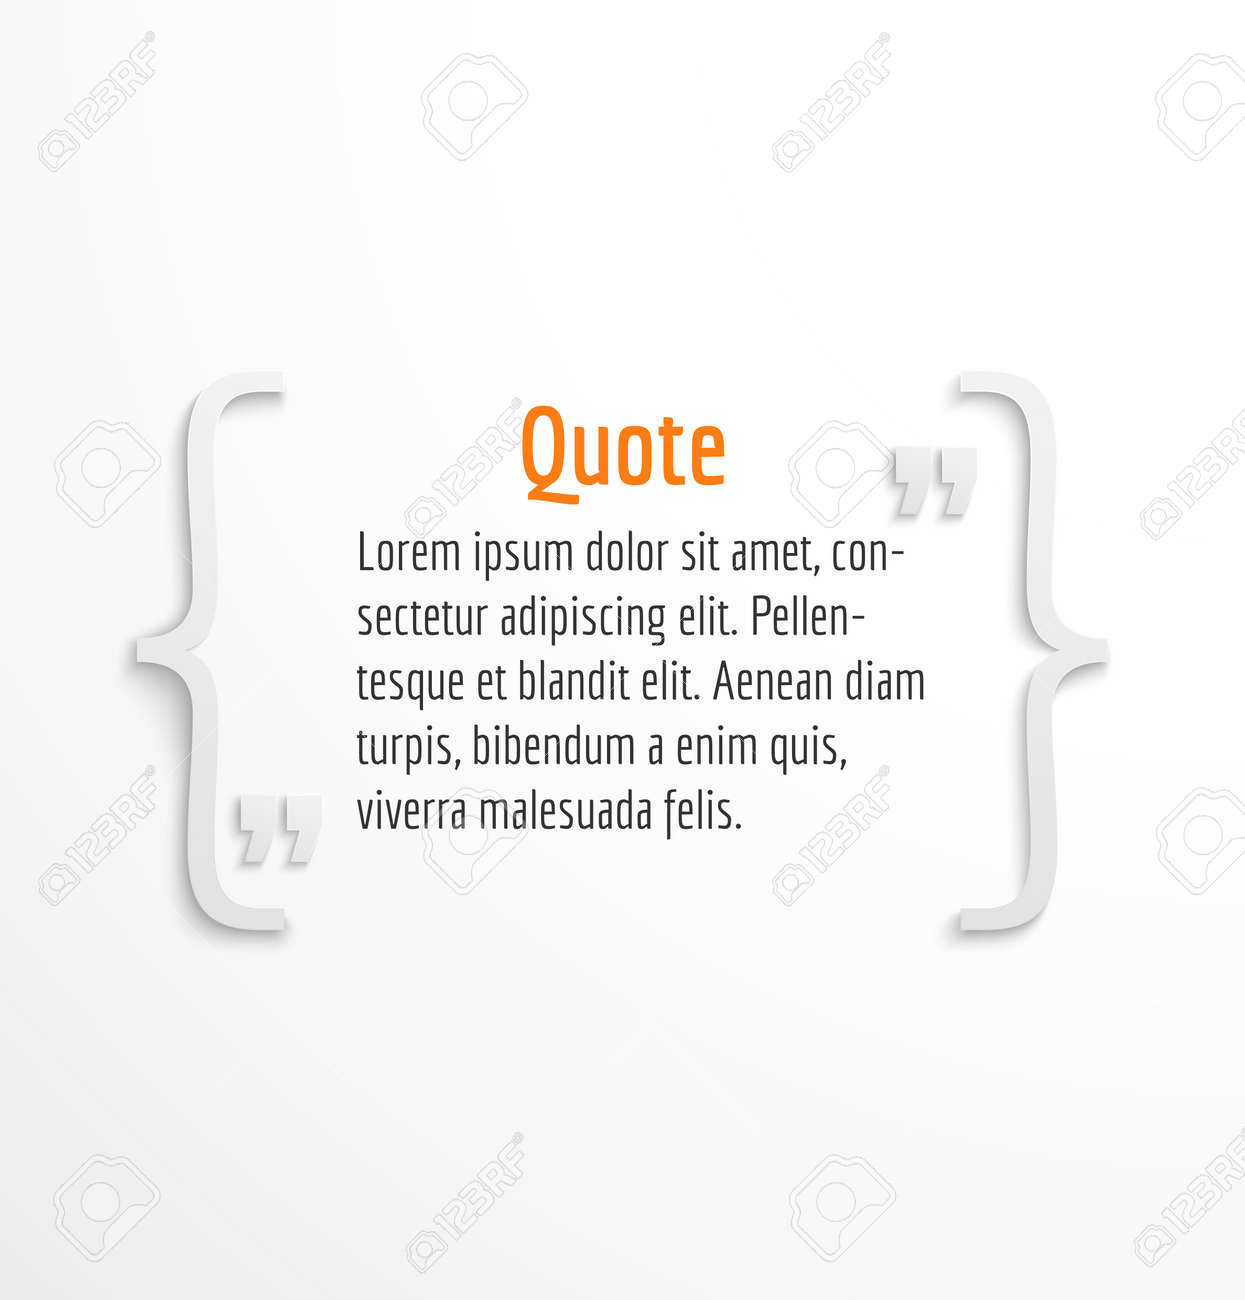 Quote blank with text message bubble, dialog box template on